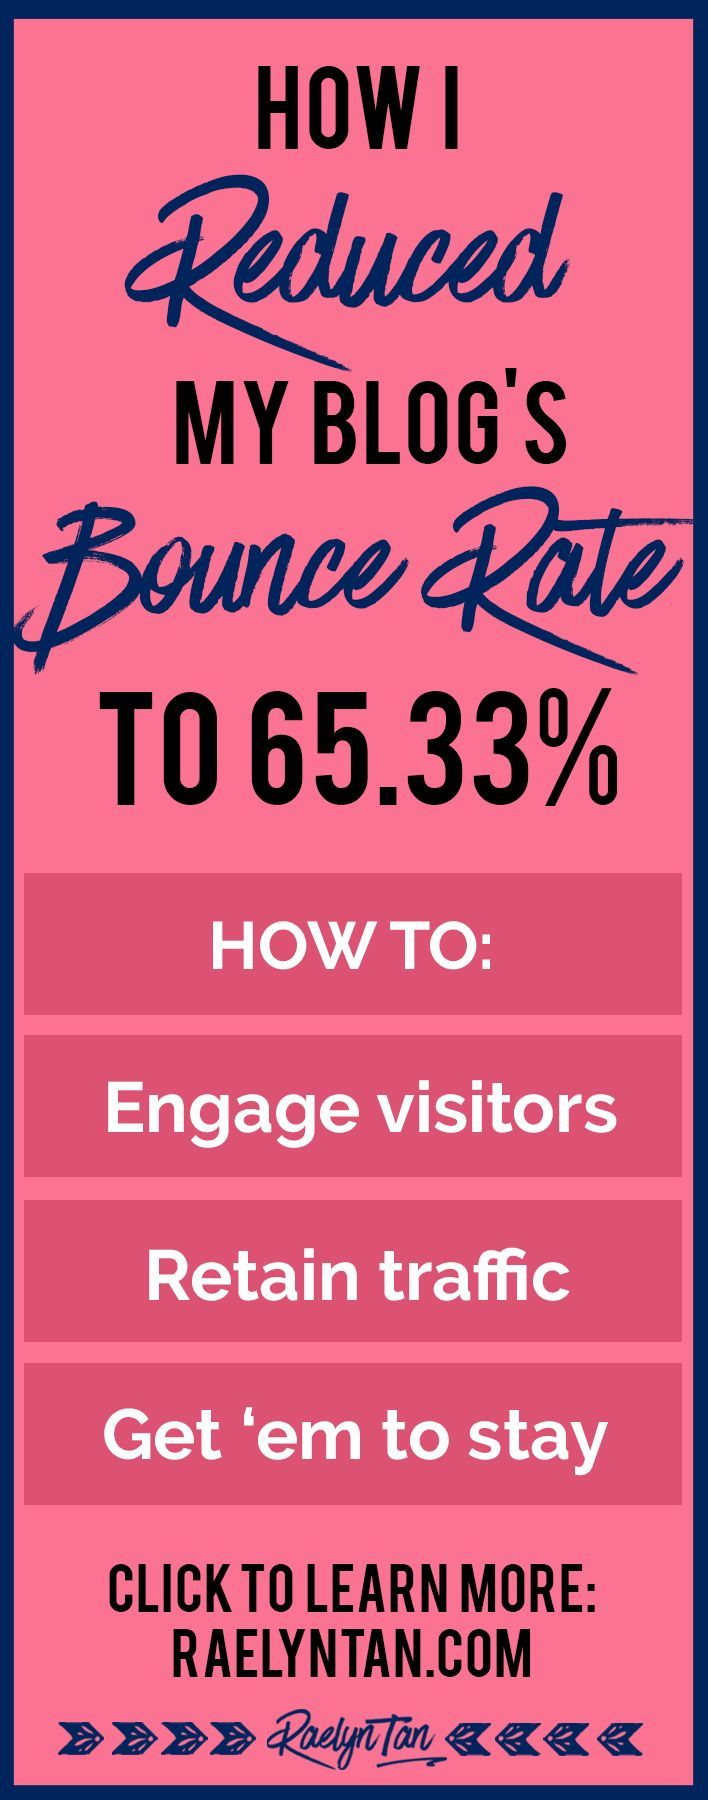 How to reduce your website's bounce rate: tips to engage visitors, retain traffic and get your blog readers to stay.